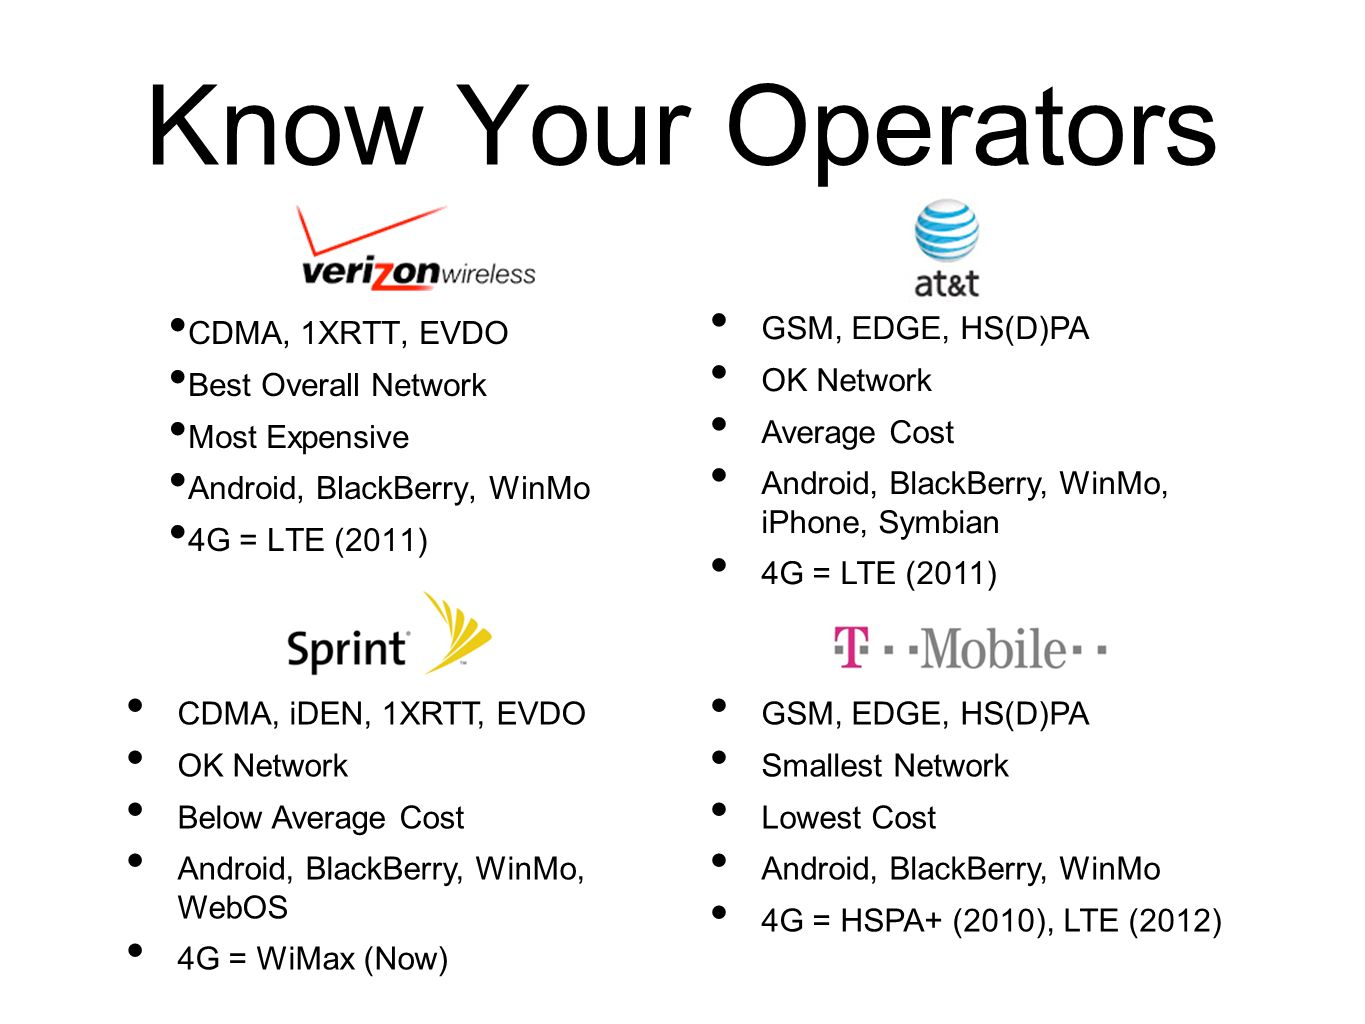 Know Your Operators CDMA, 1XRTT, EVDO Best Overall Network